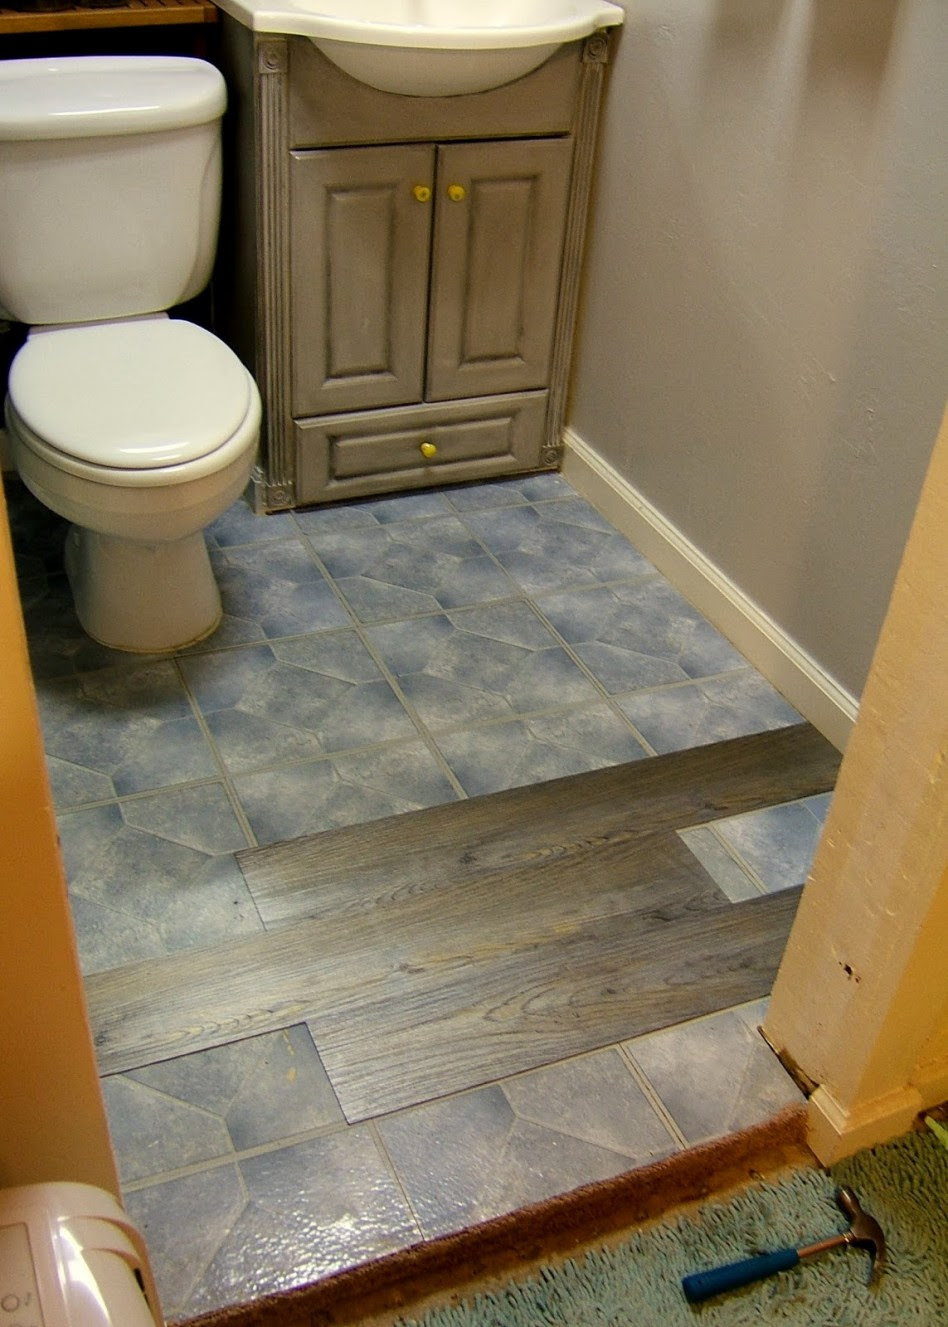 24 magnificent pictures and ideas of how o tile a bathroom ...